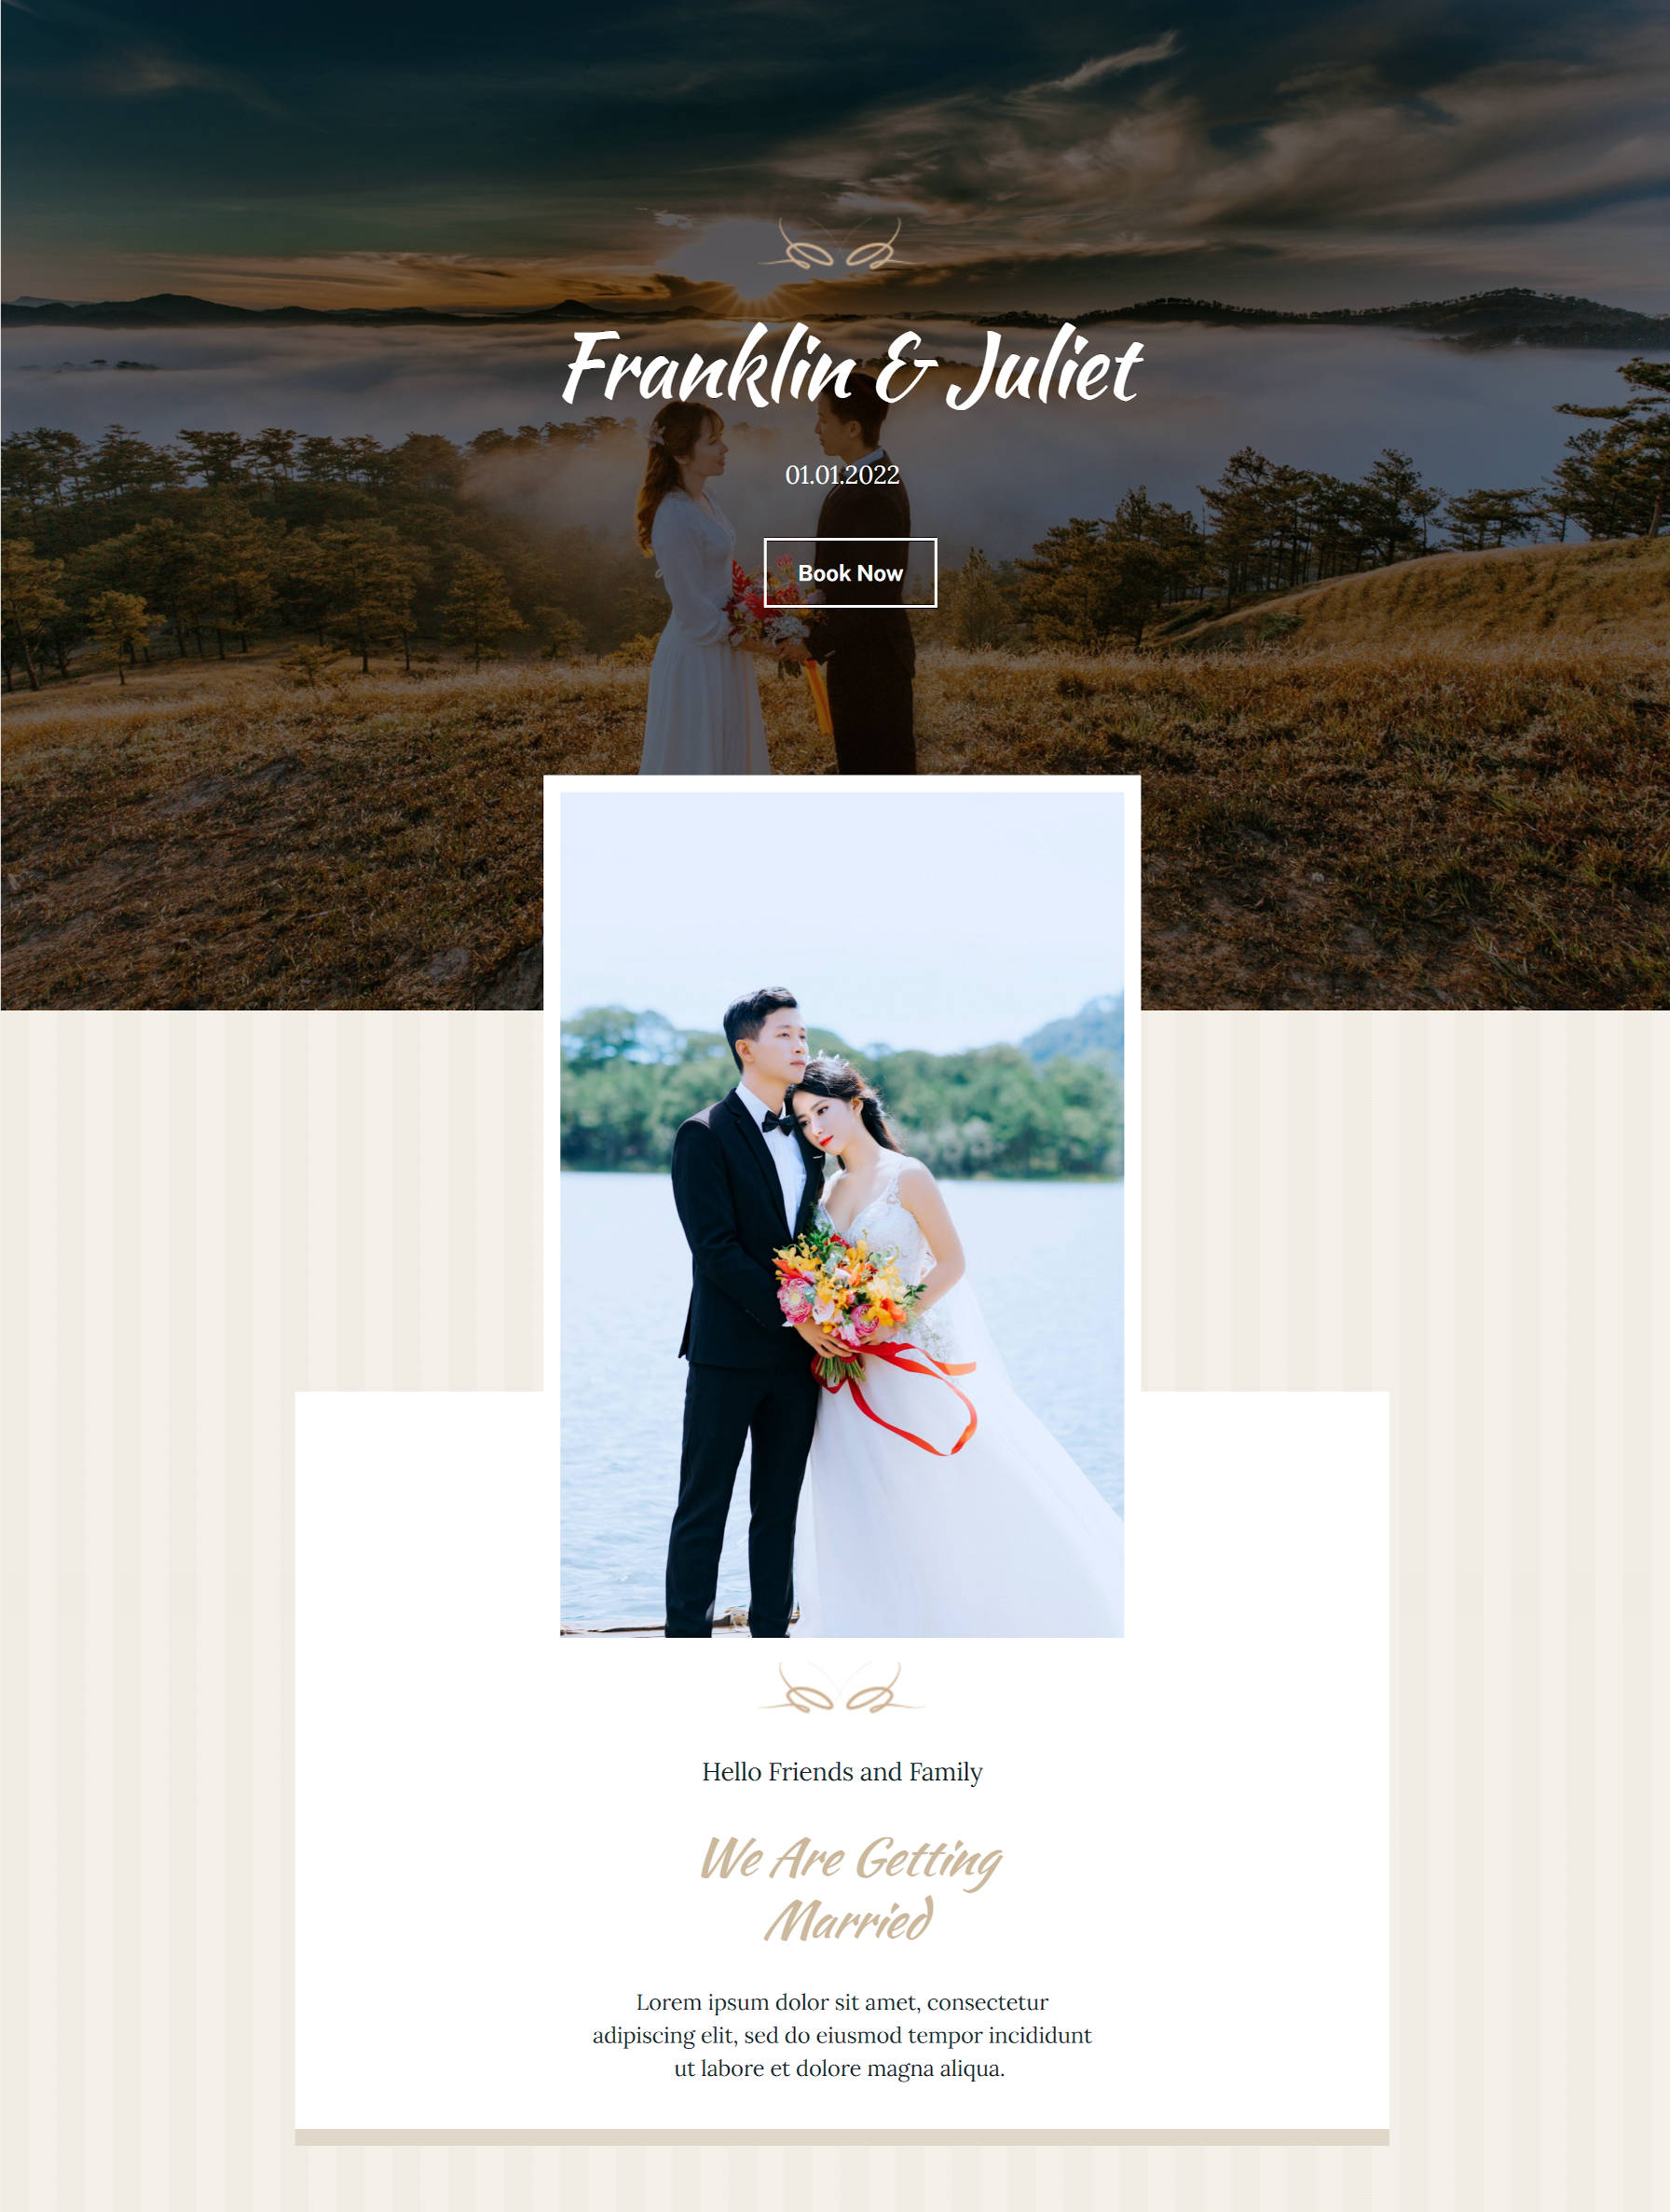 Content area of a wedding homepage design with a hero header, overlapping image, and text.